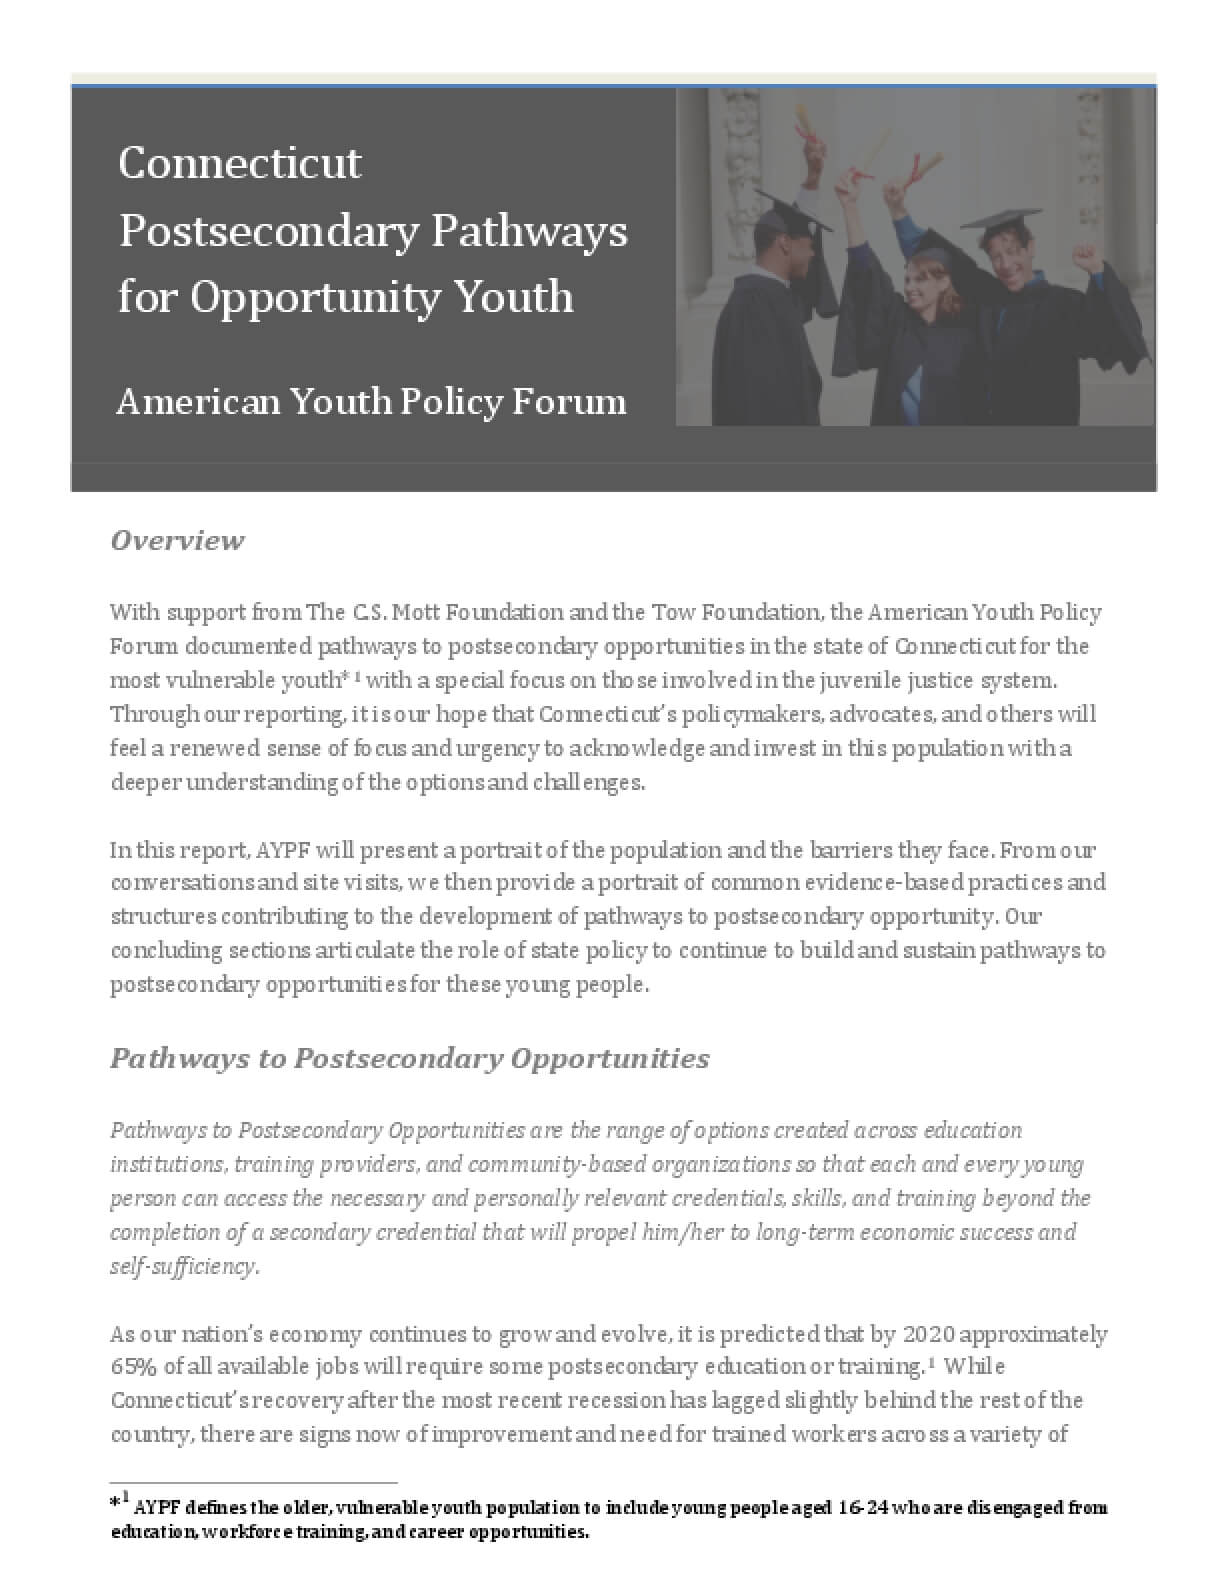 Connecticut Postsecondary Pathways for Opportunity Youth